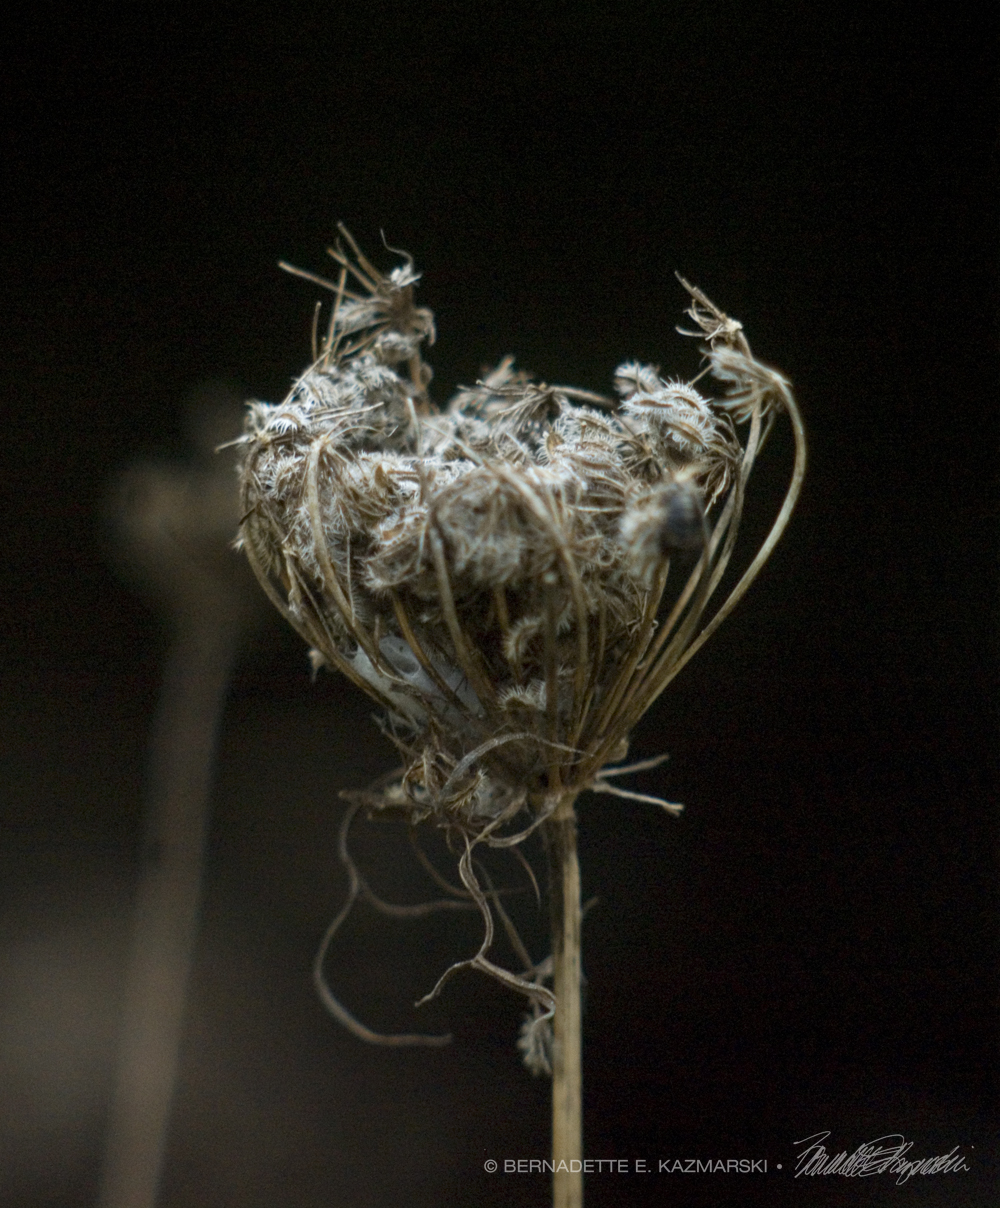 queen anne's lace flower dried